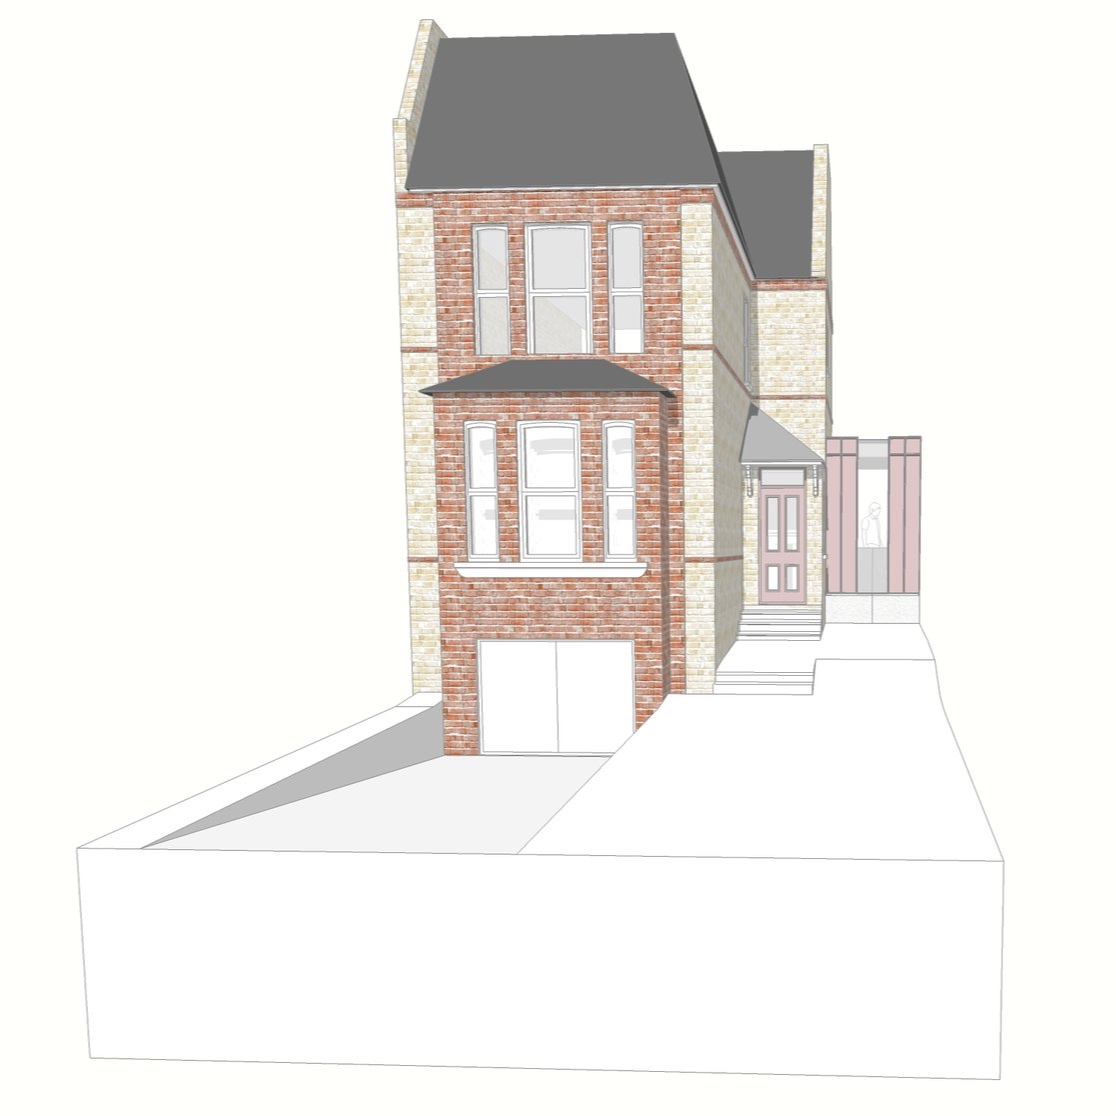 3D image of The Pink House, complete with the pink steel extension we've received planning permission for